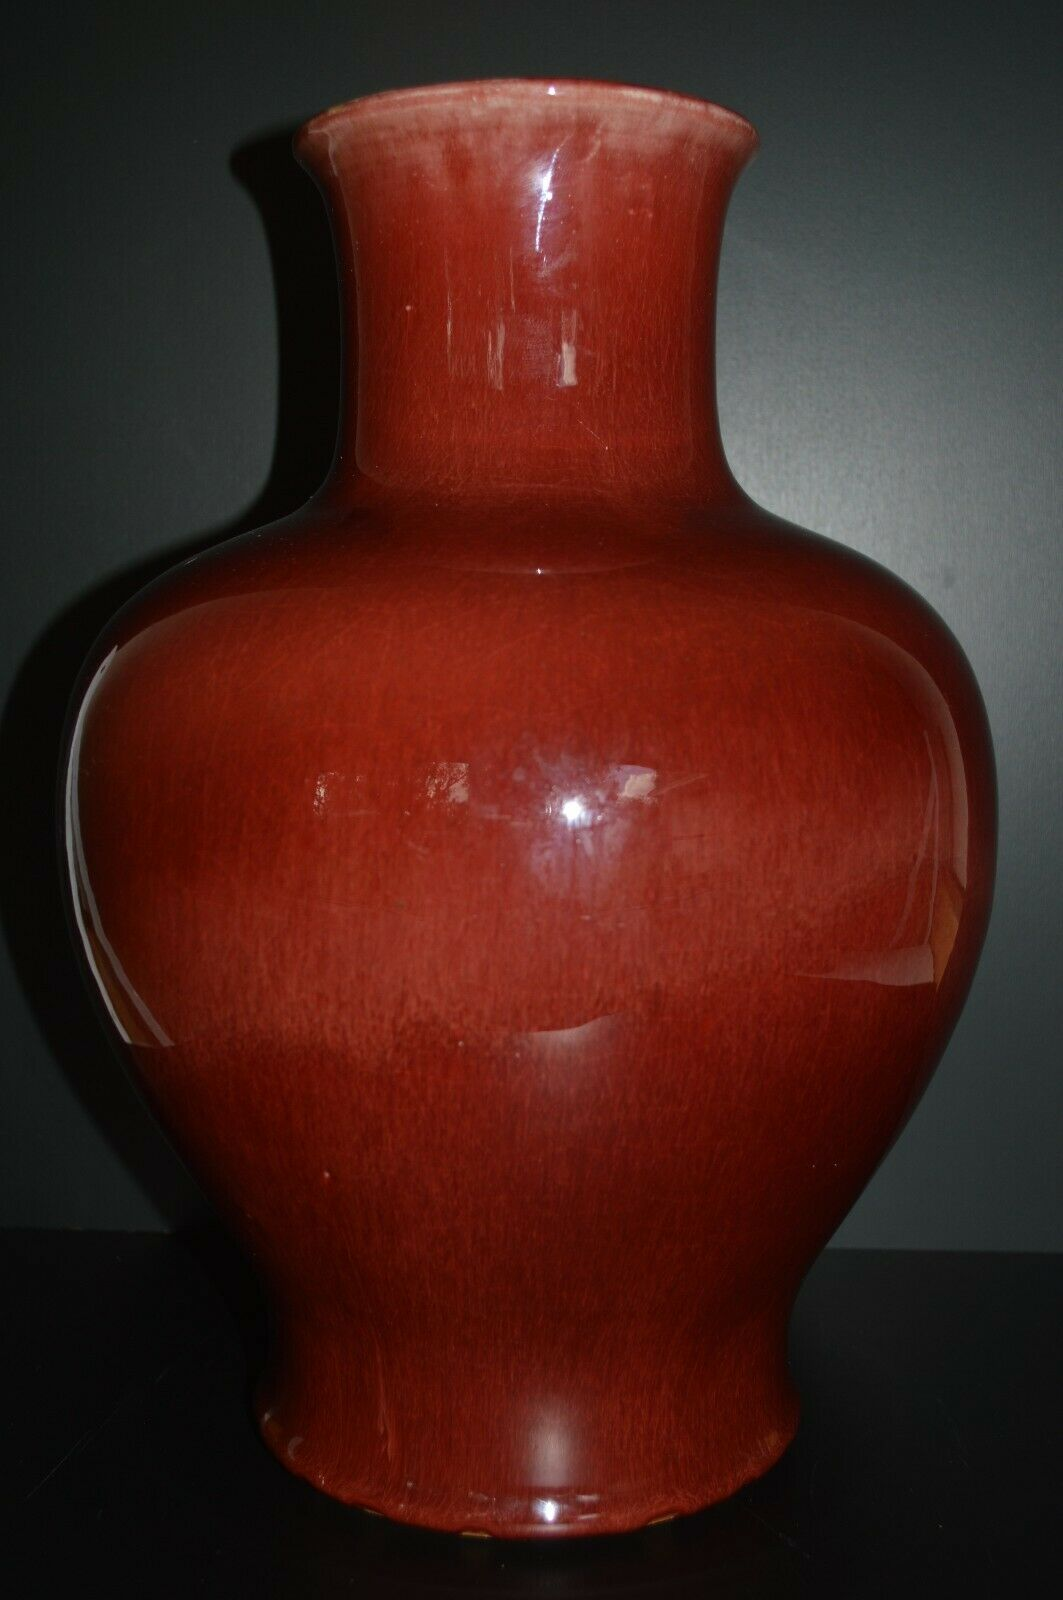 Antique Chinese Oxblood Langyao Red Globular Vase - 9th C Chinese Antique - $1,800.00